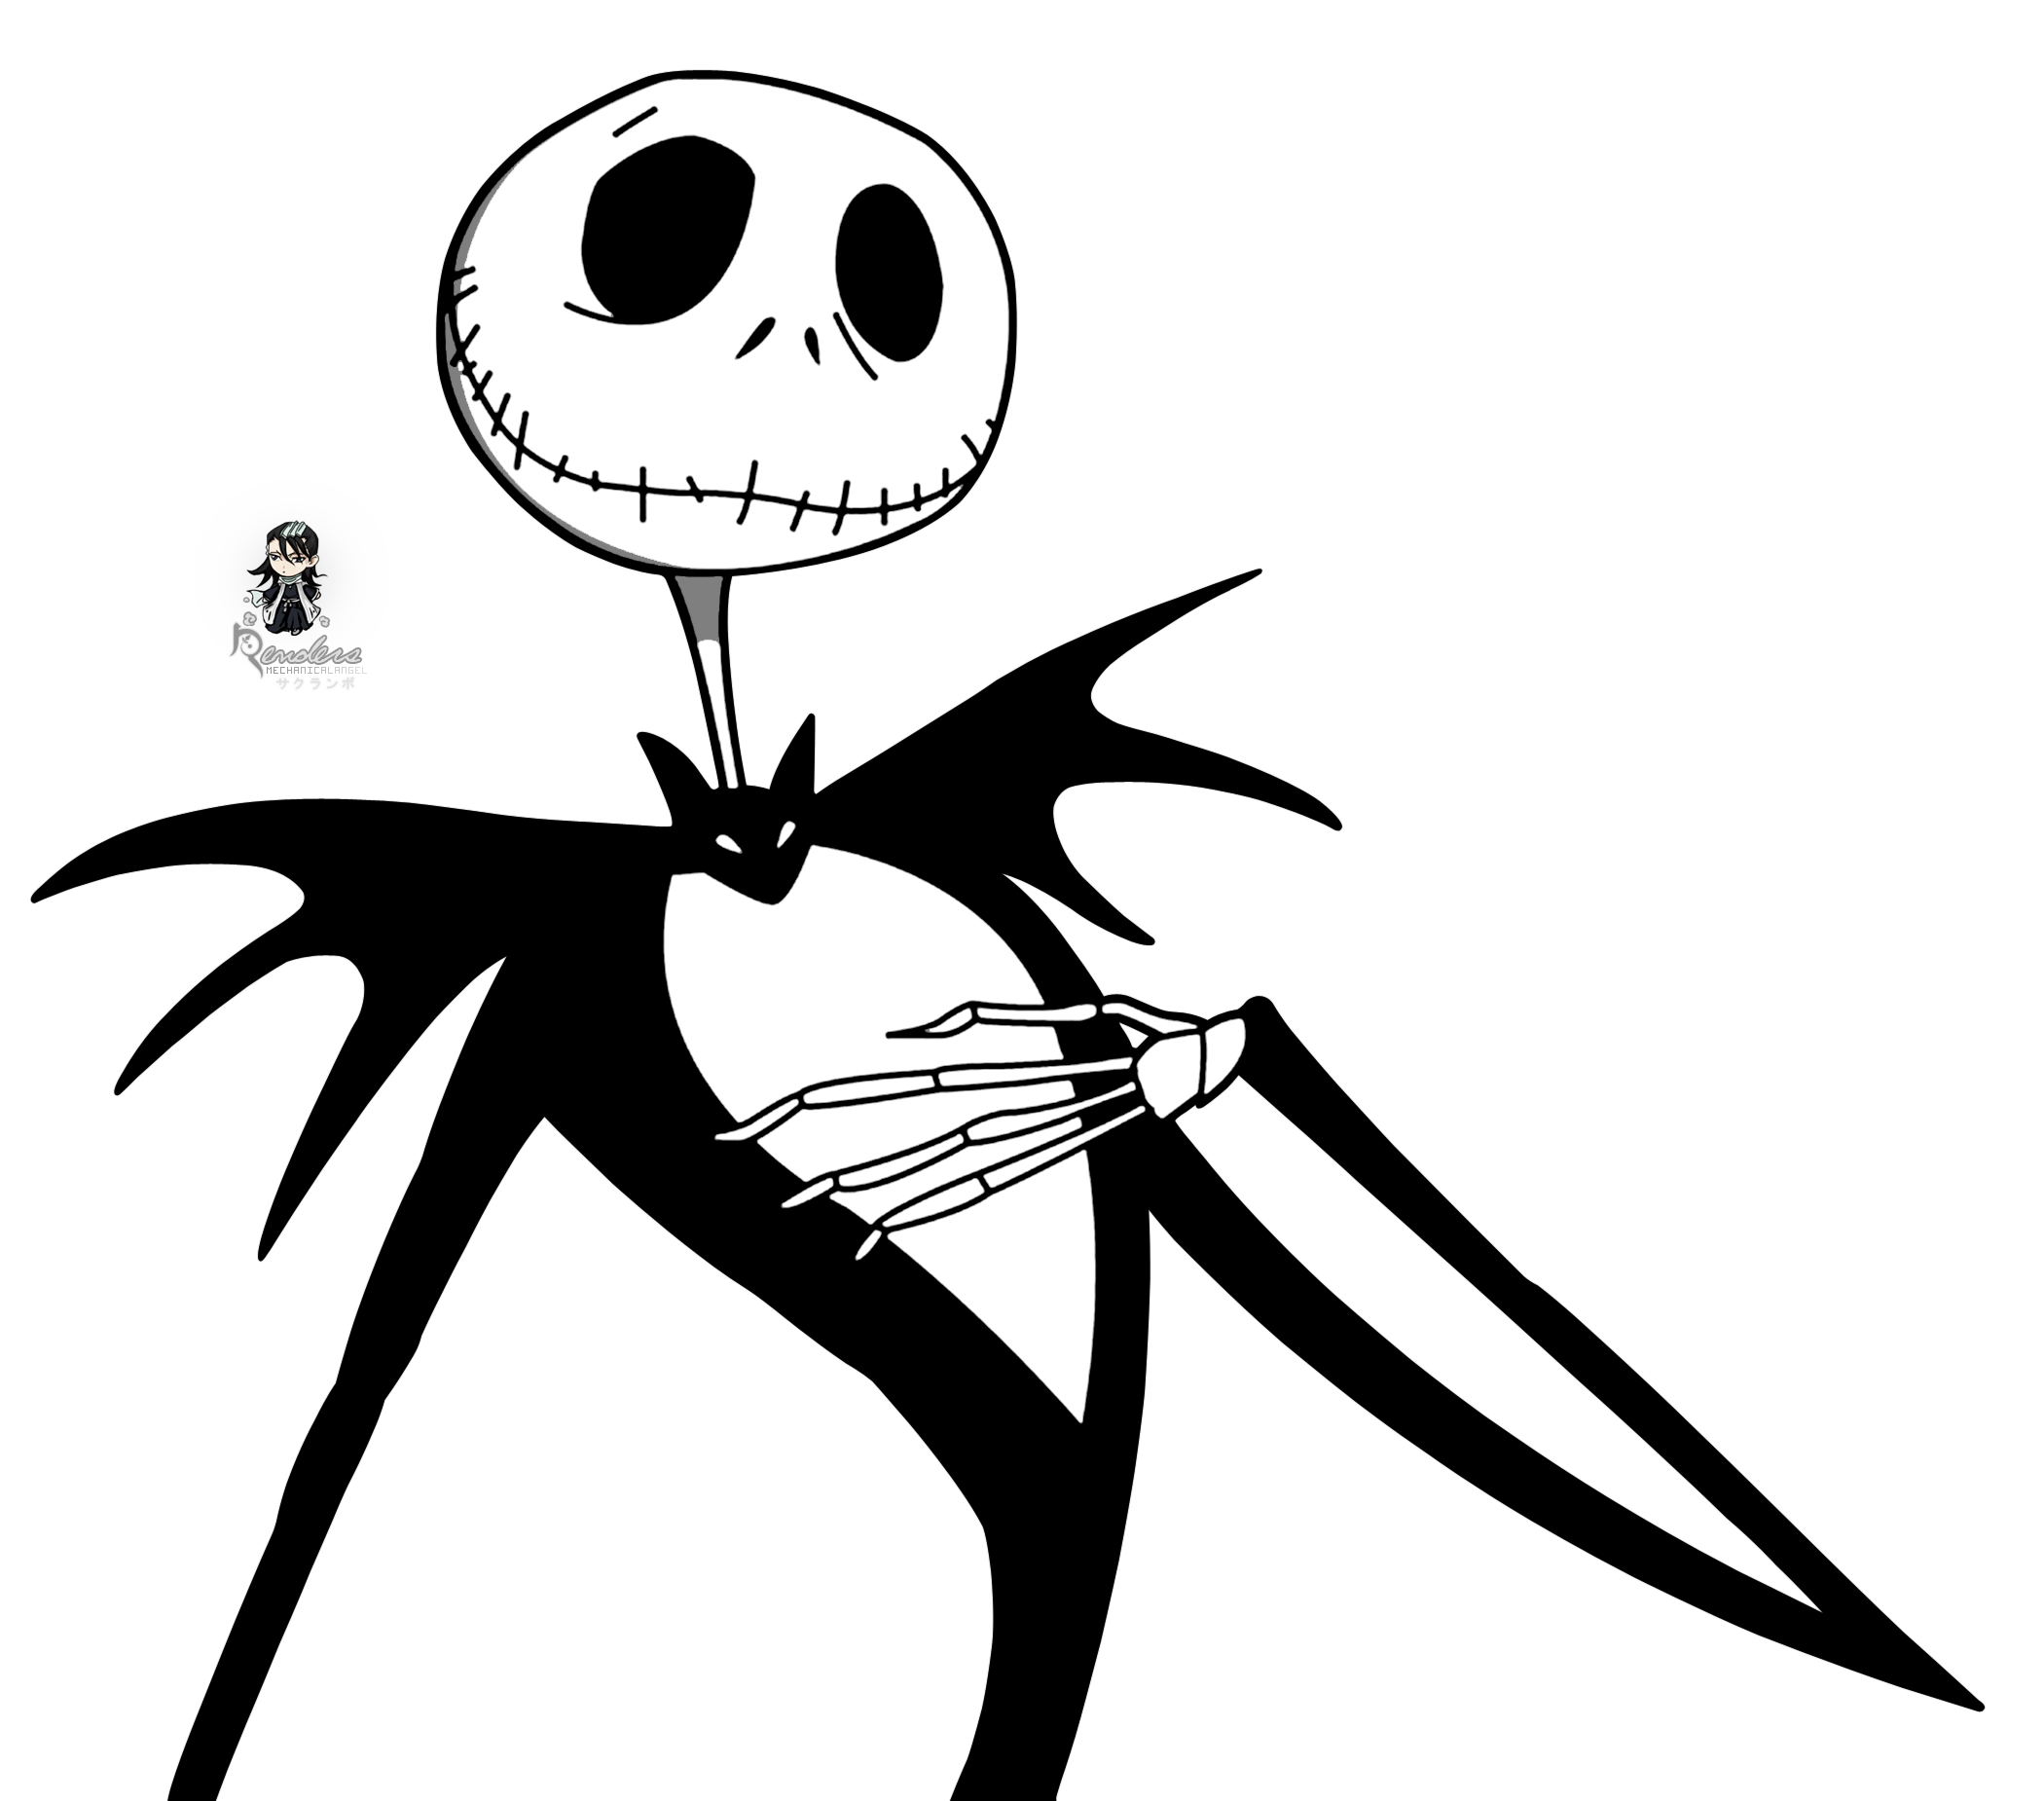 Nightmare before christmas night shade labels black and white png. Silhouette render the jack